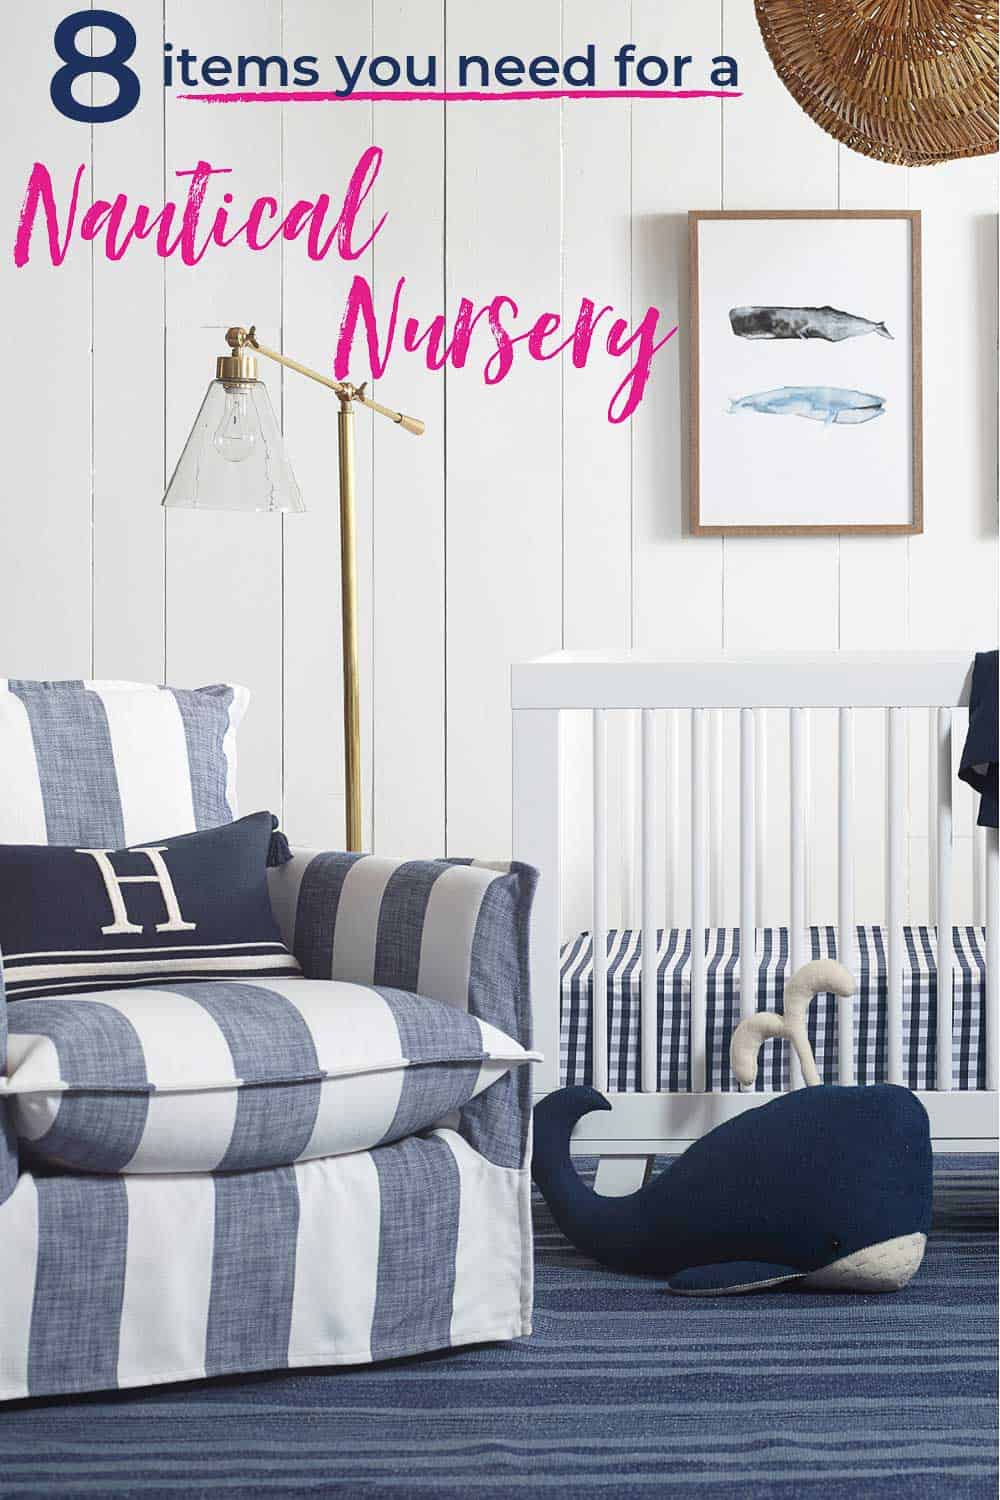 Design a nautical nursery that complements your home decor with these 8 decor essentials. Gorgeous looks from Serena & Lilly will grow with your baby for years to come. #serenaandlily #nauticalnursery #nurseryinspiration